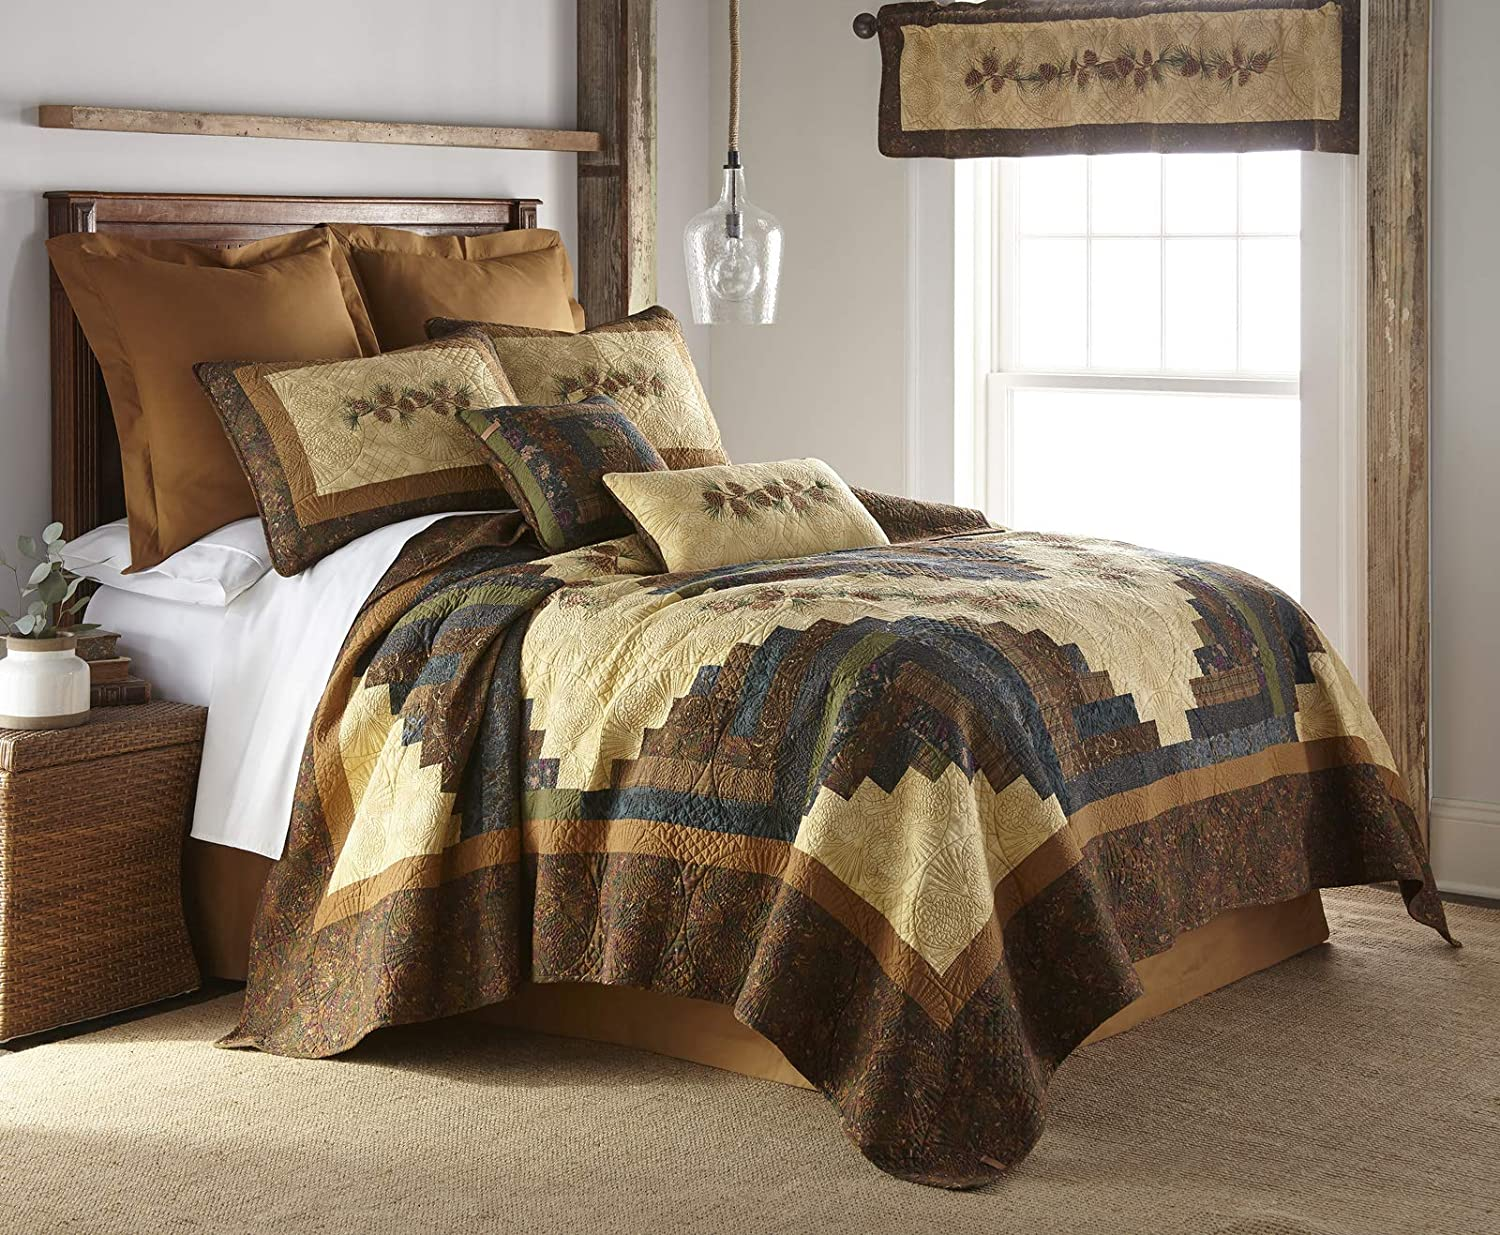 Full Queen Bedding Set - Ranking TOP13 3 Raising Cabin Piece by Pine Ranking TOP20 Cone